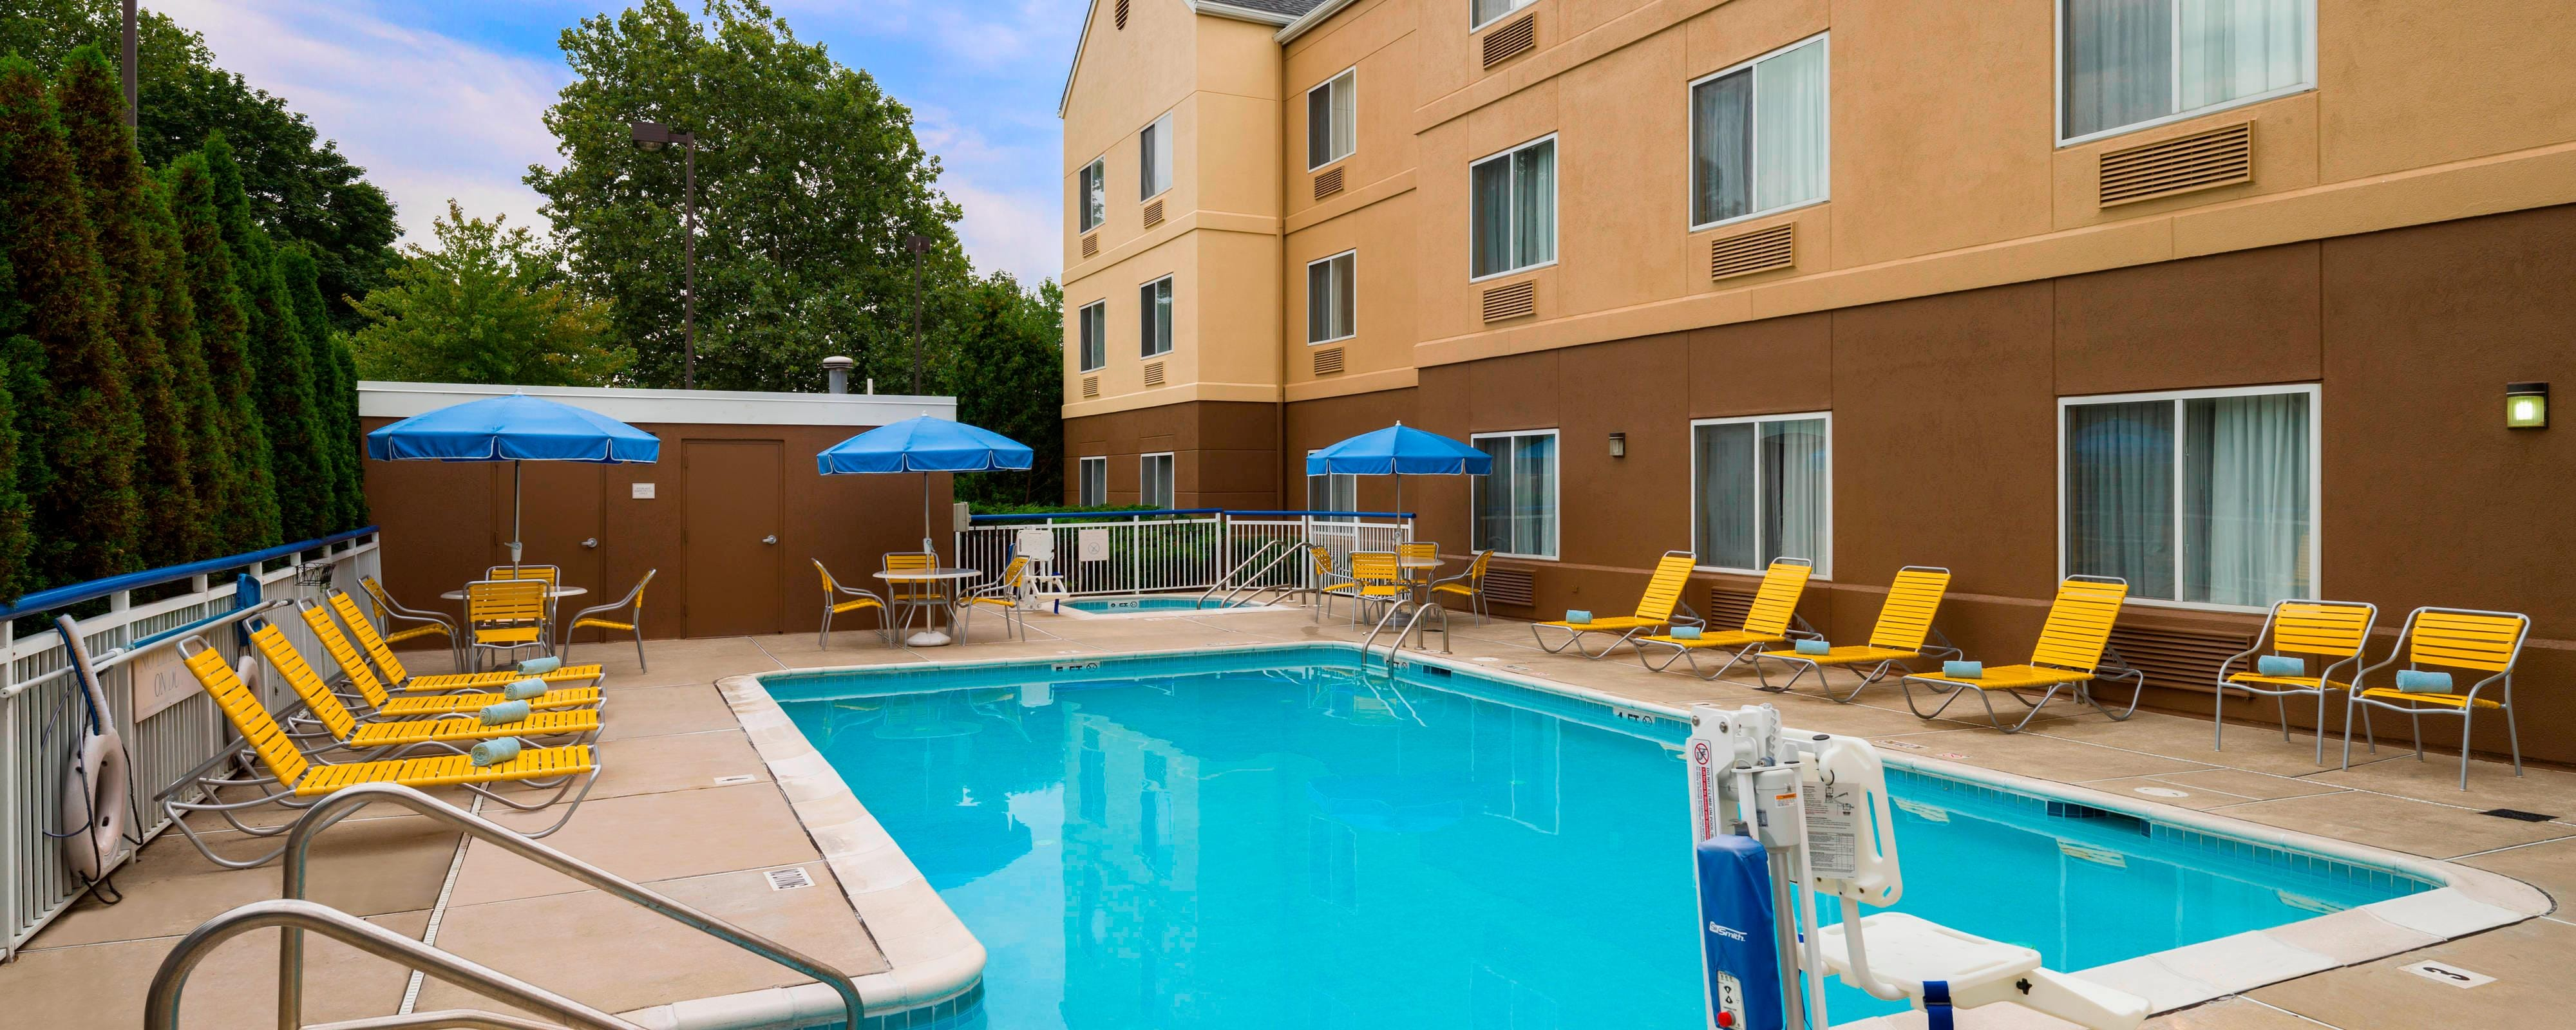 Hotels in Bethlehem, PA, mit Pool